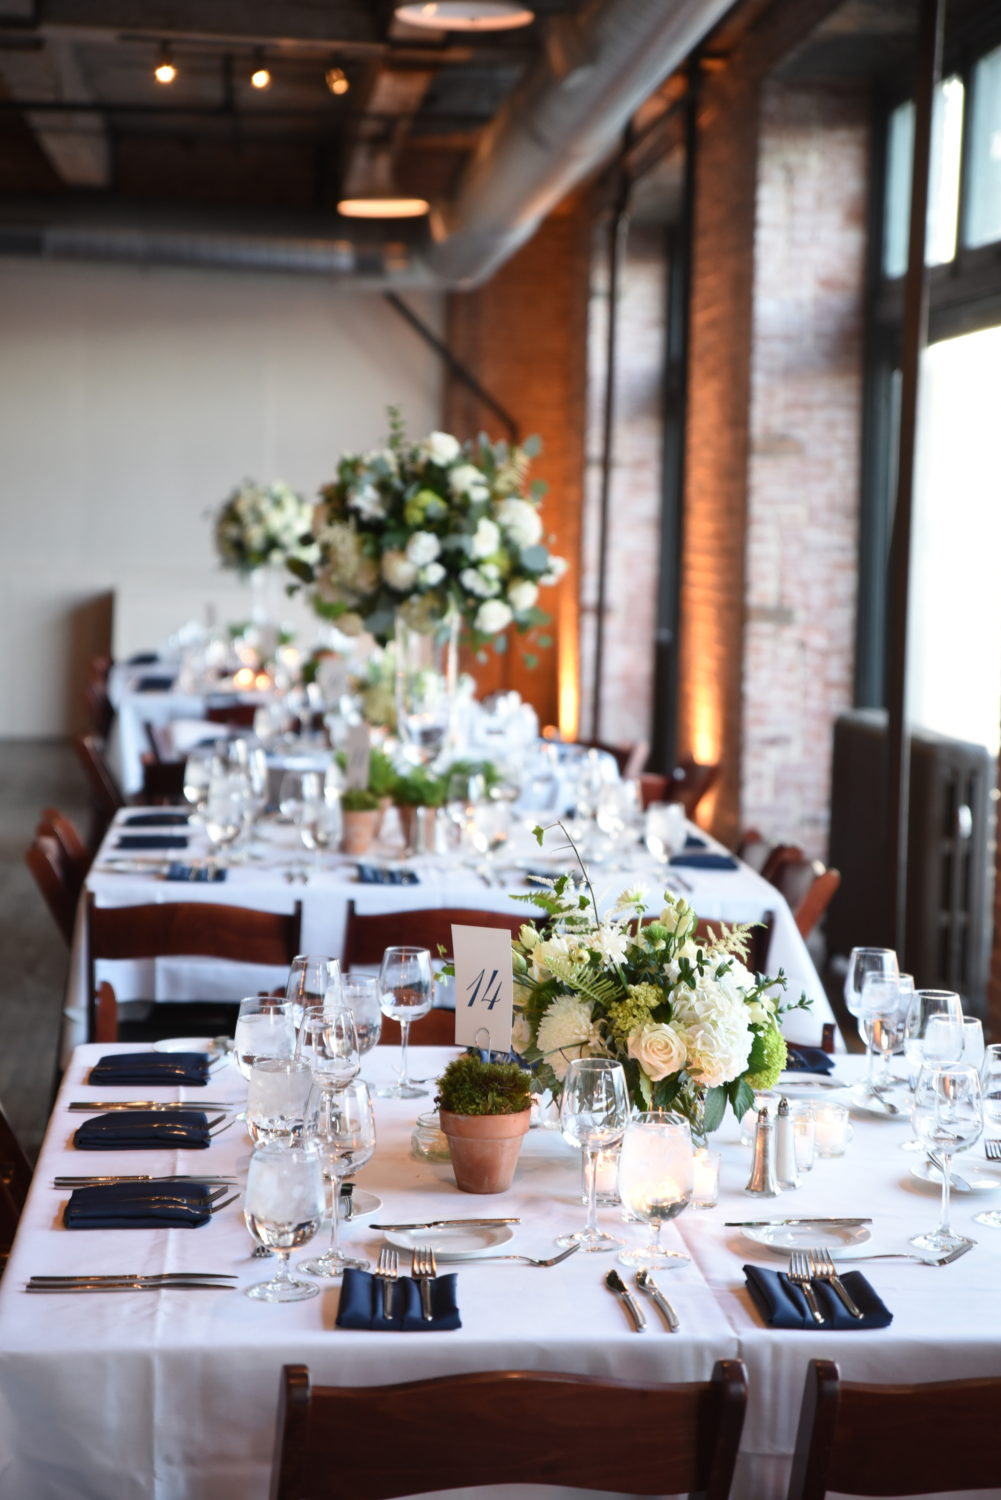 classic white and green table arrangements